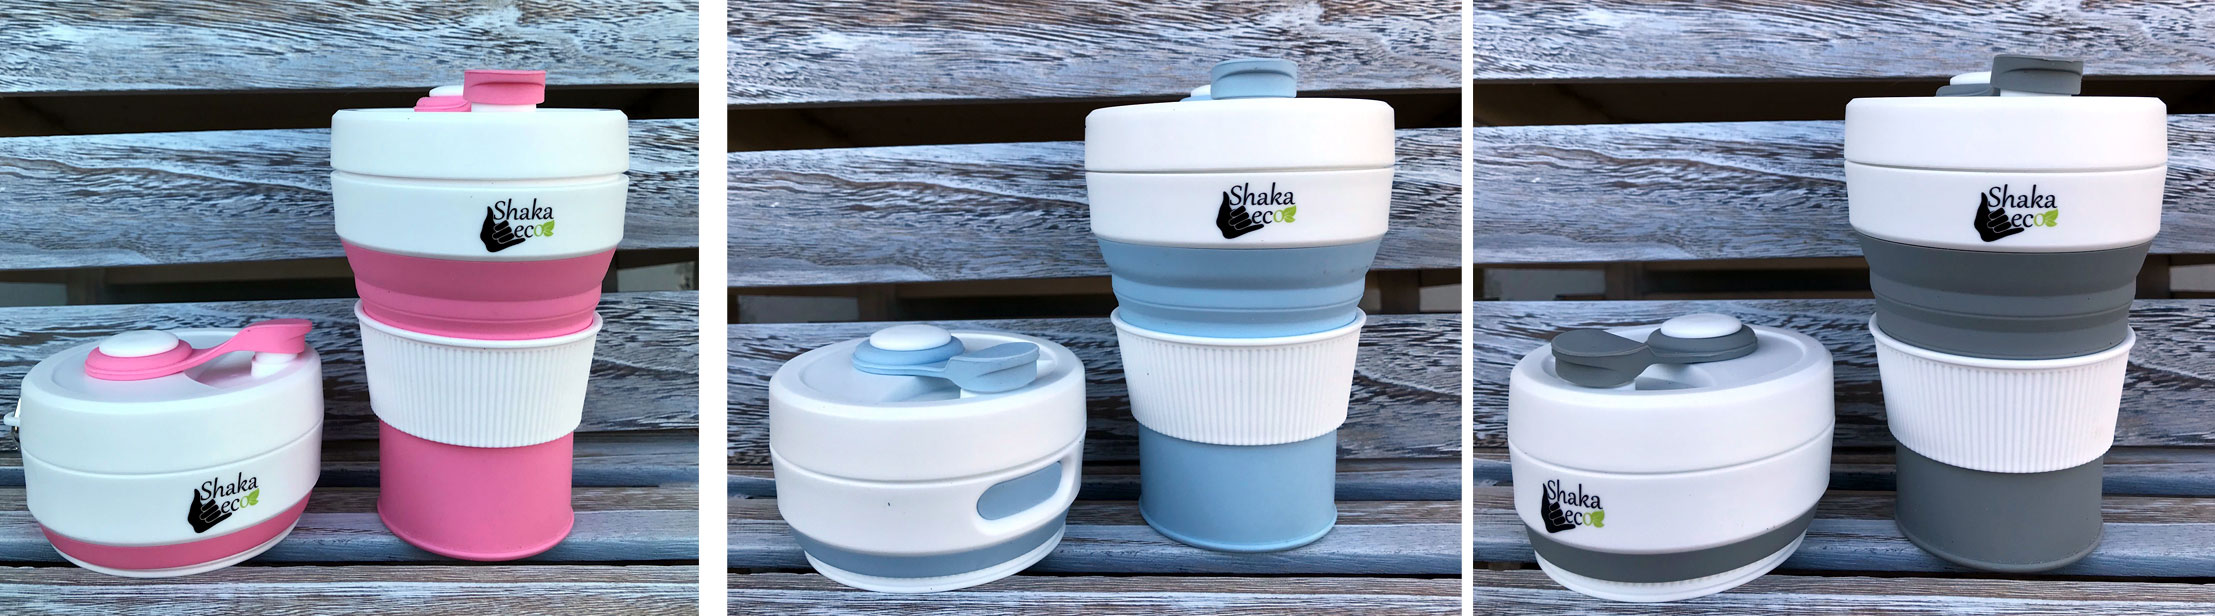 Collapsible Cup fits in your bag